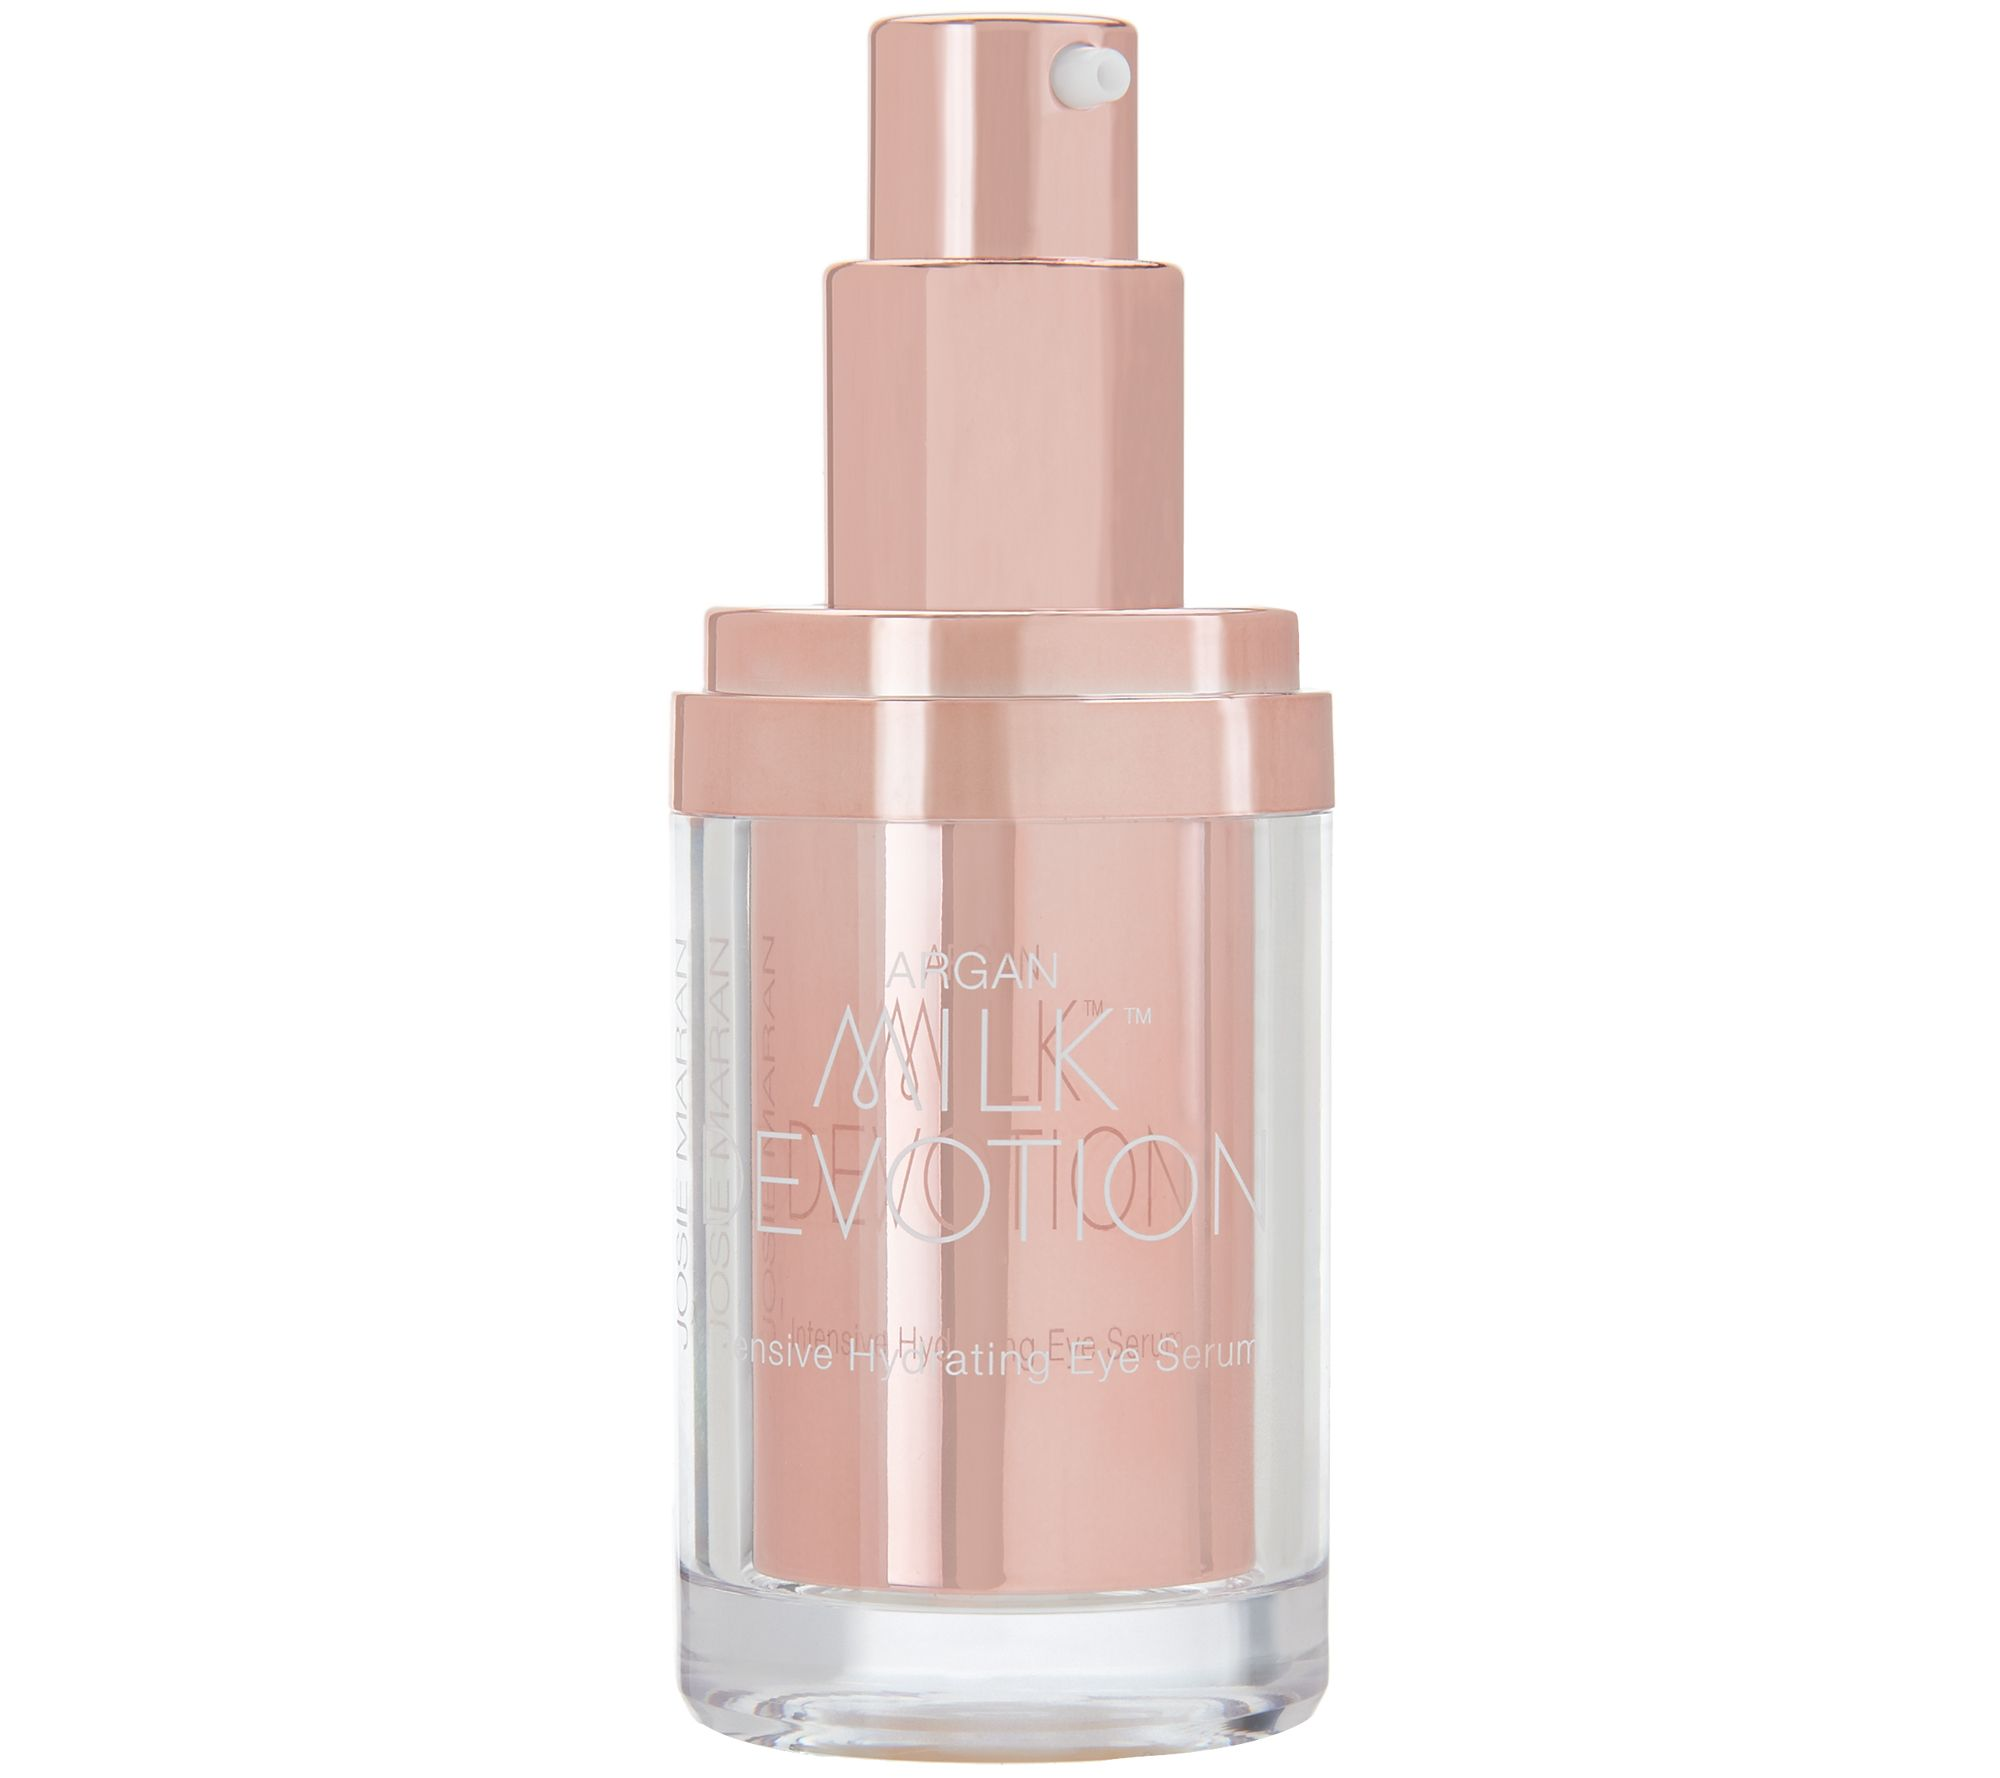 Josie Maran Devotion Creamy Argan Milk Eye Serum - A272764